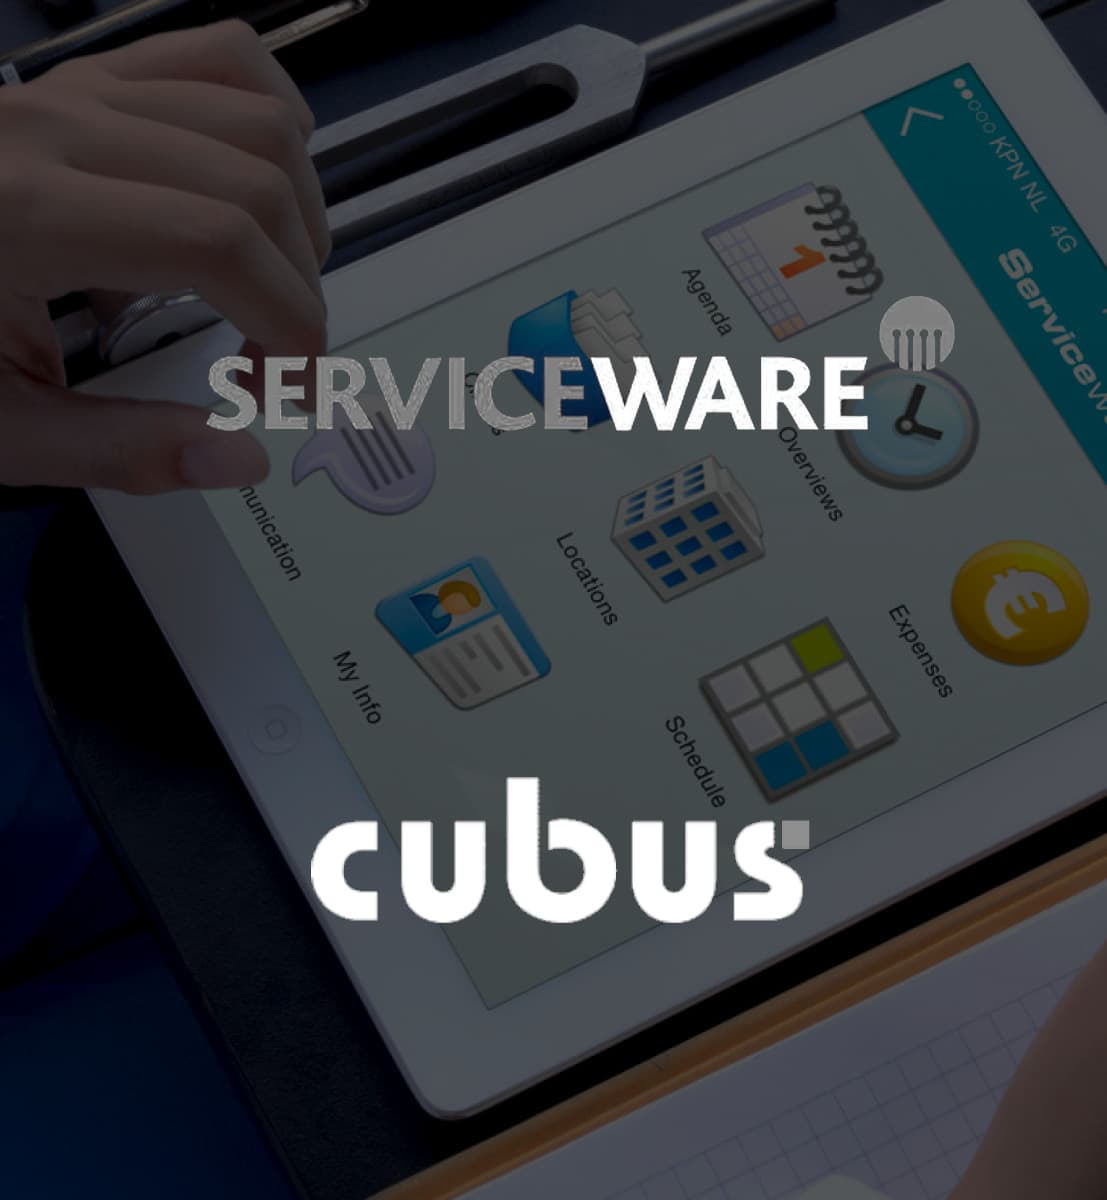 DEX international M&A and its partner Carlsquare advised Serviceware SE on the acquisition of cubus AG